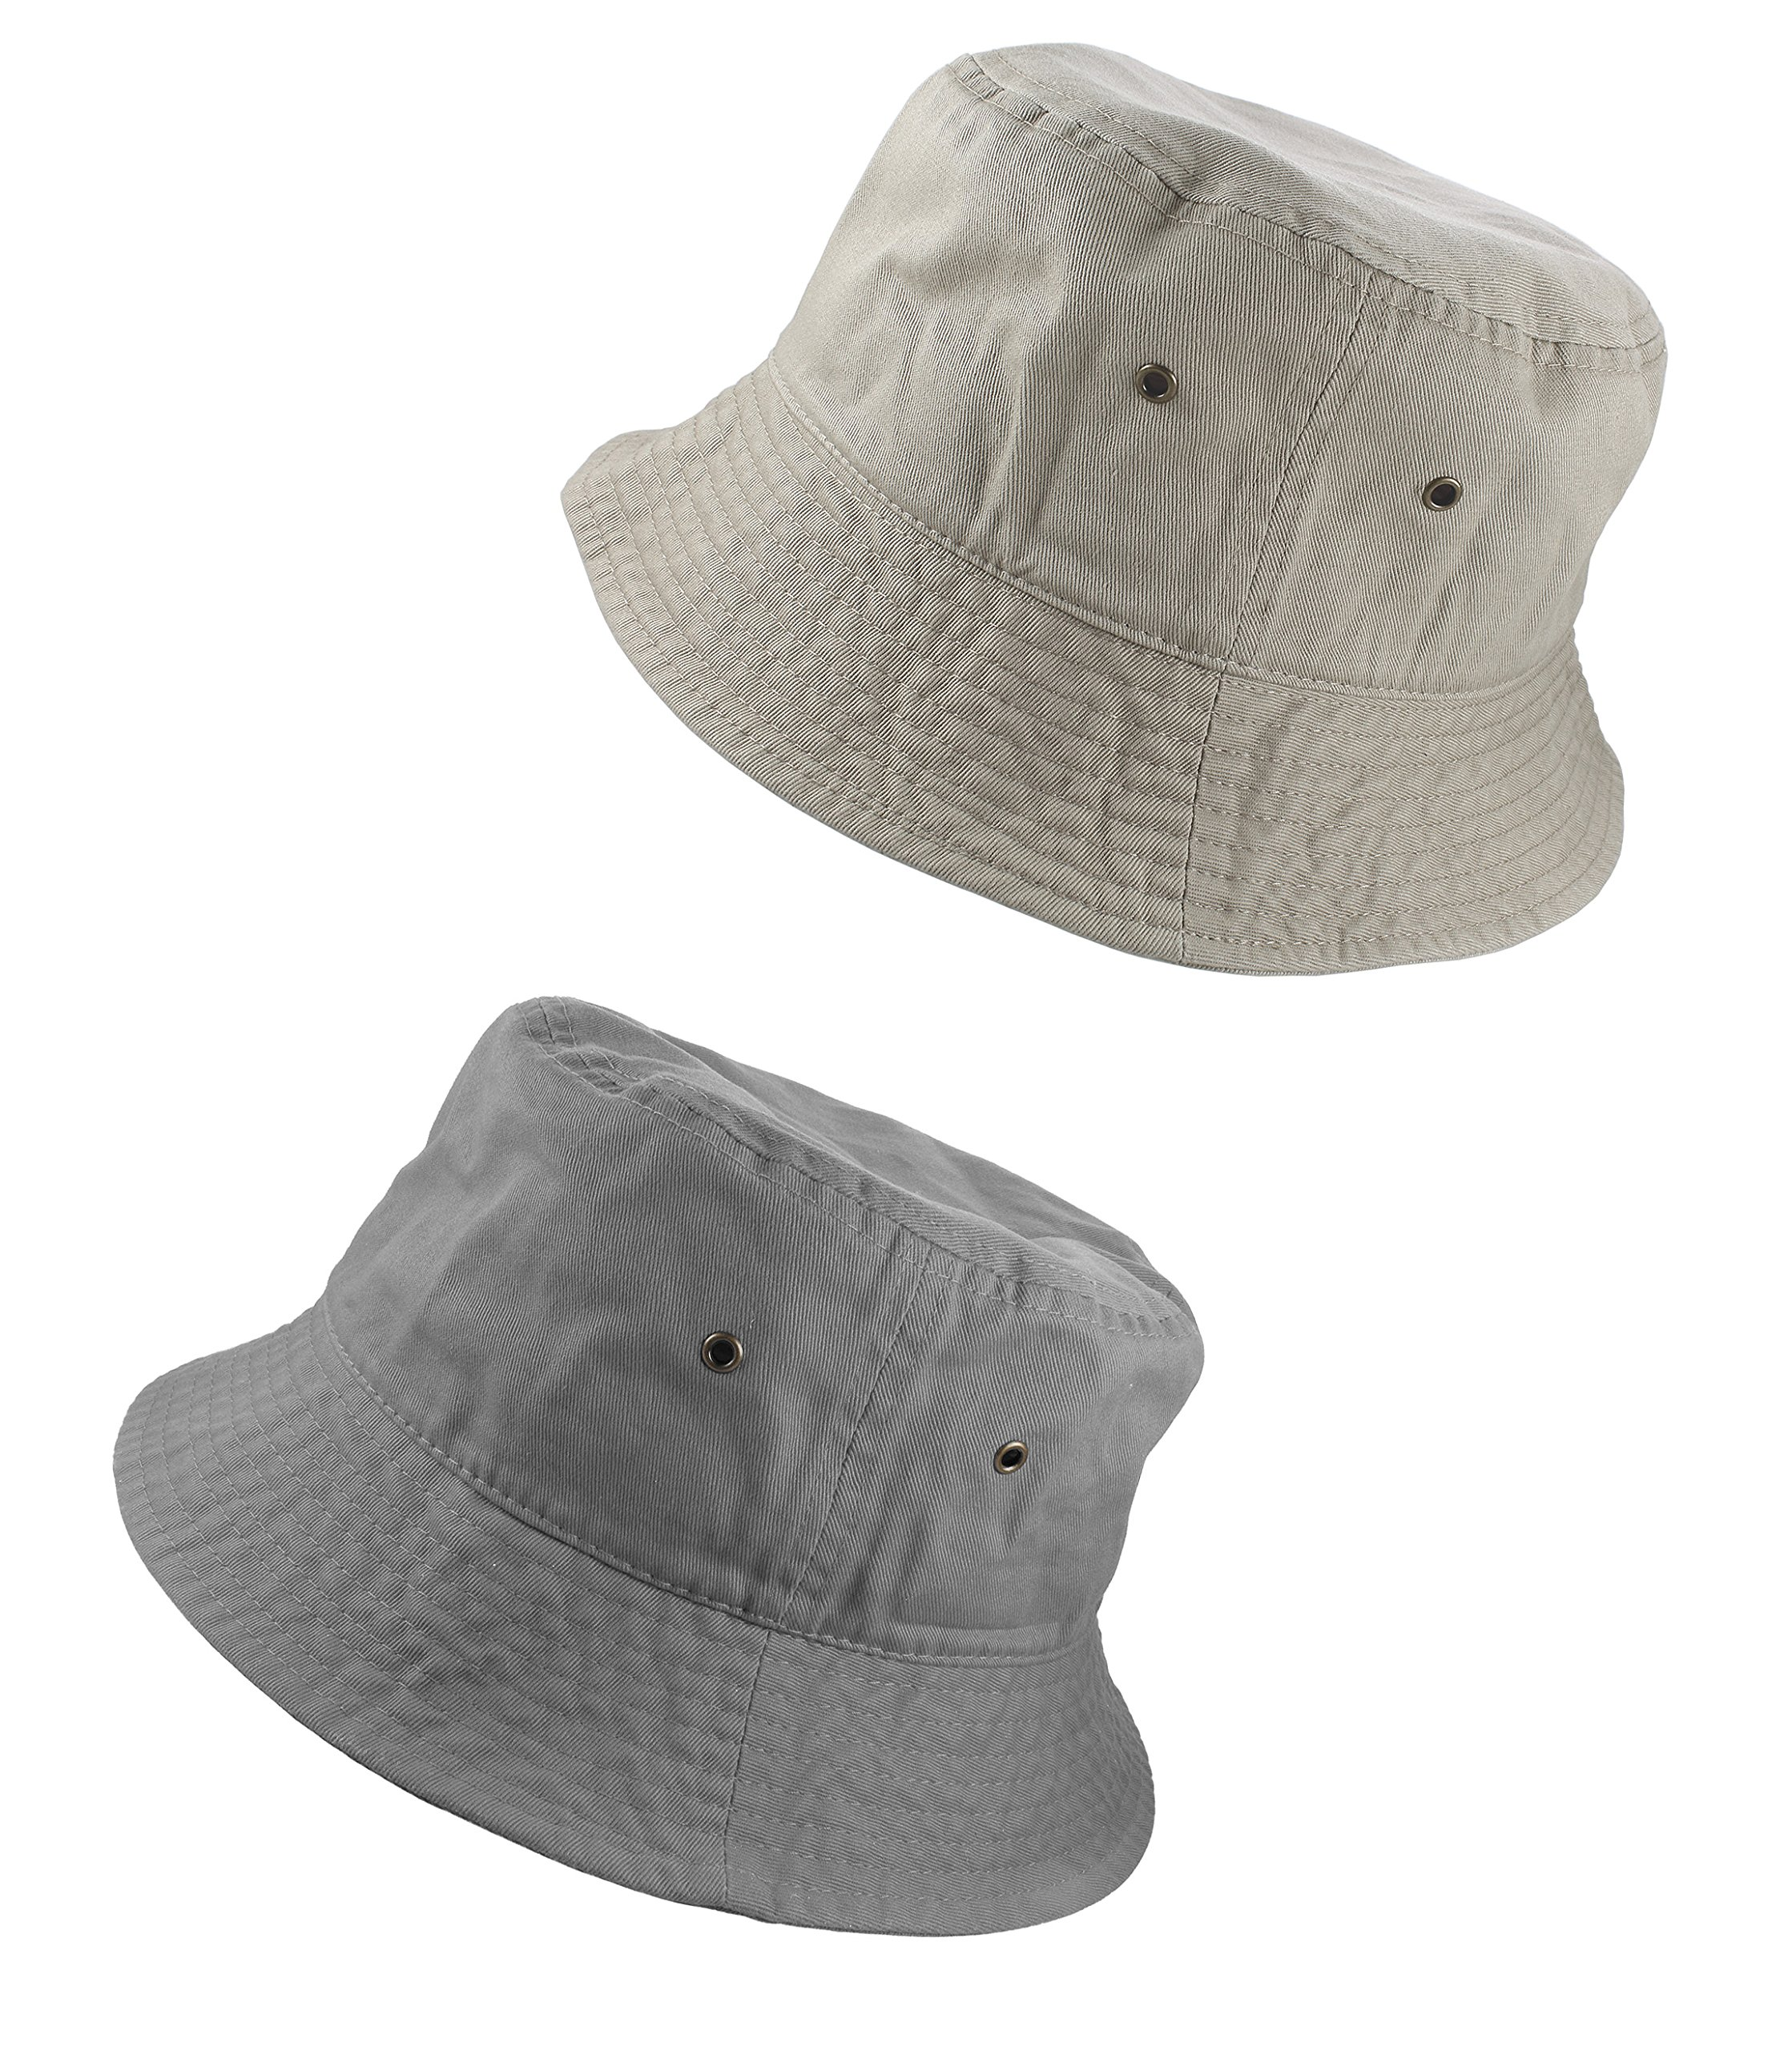 Gelante 100% Cotton Packable Fishing Hunting Sunmmer Travel Bucket Cap Hat 1900-Gray/Putty-L/XL